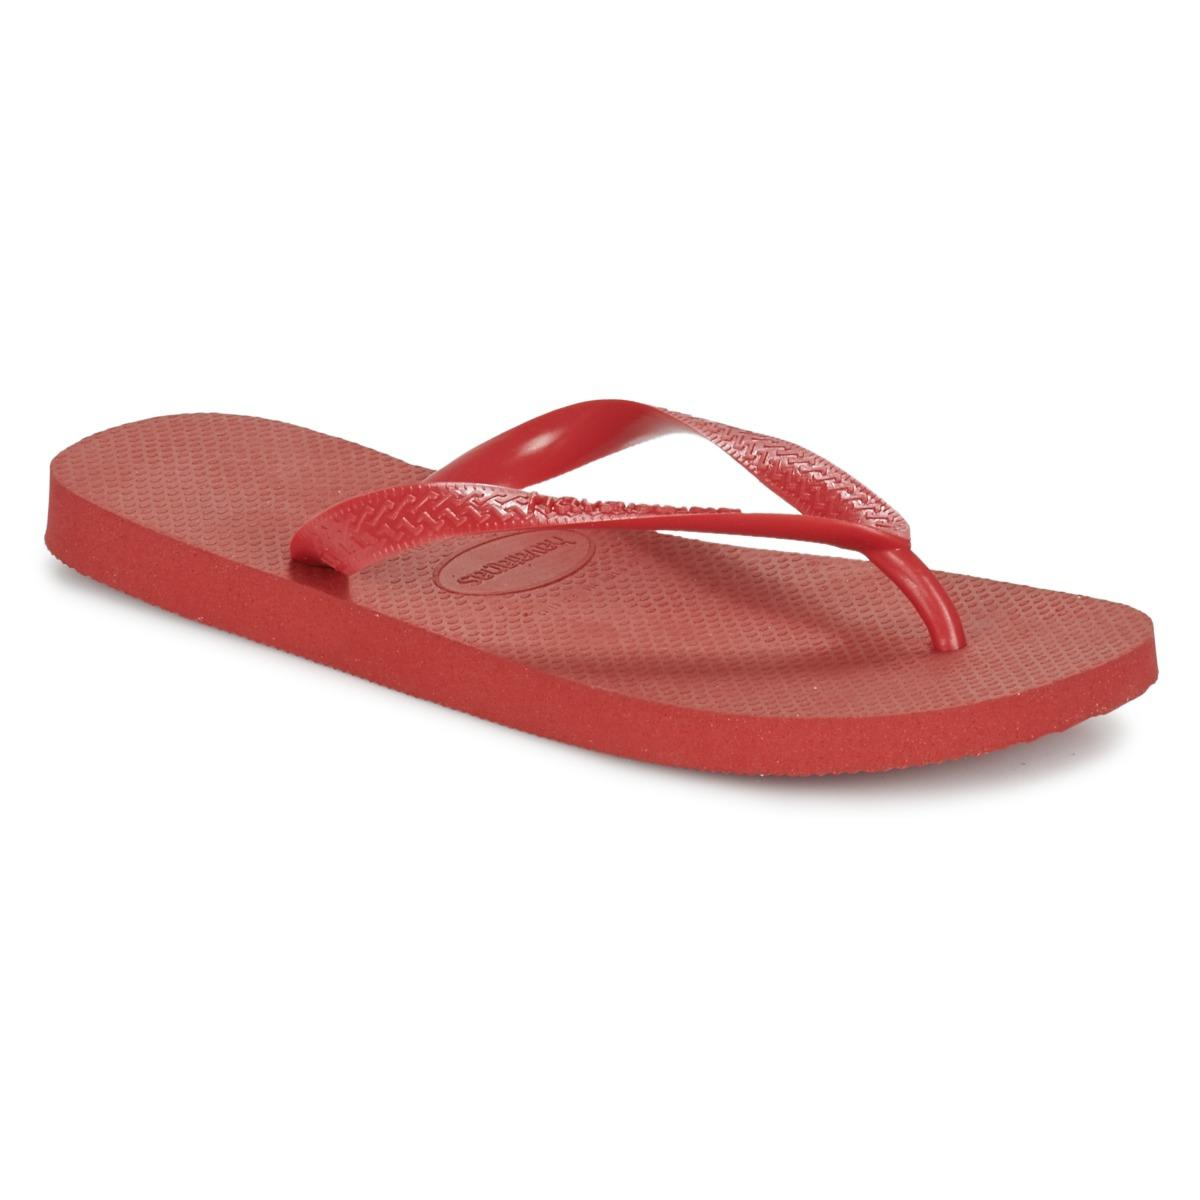 63a1463ad Havaianas Top Flip Flops (hollywood Rose) Women s Sandals in Red ...